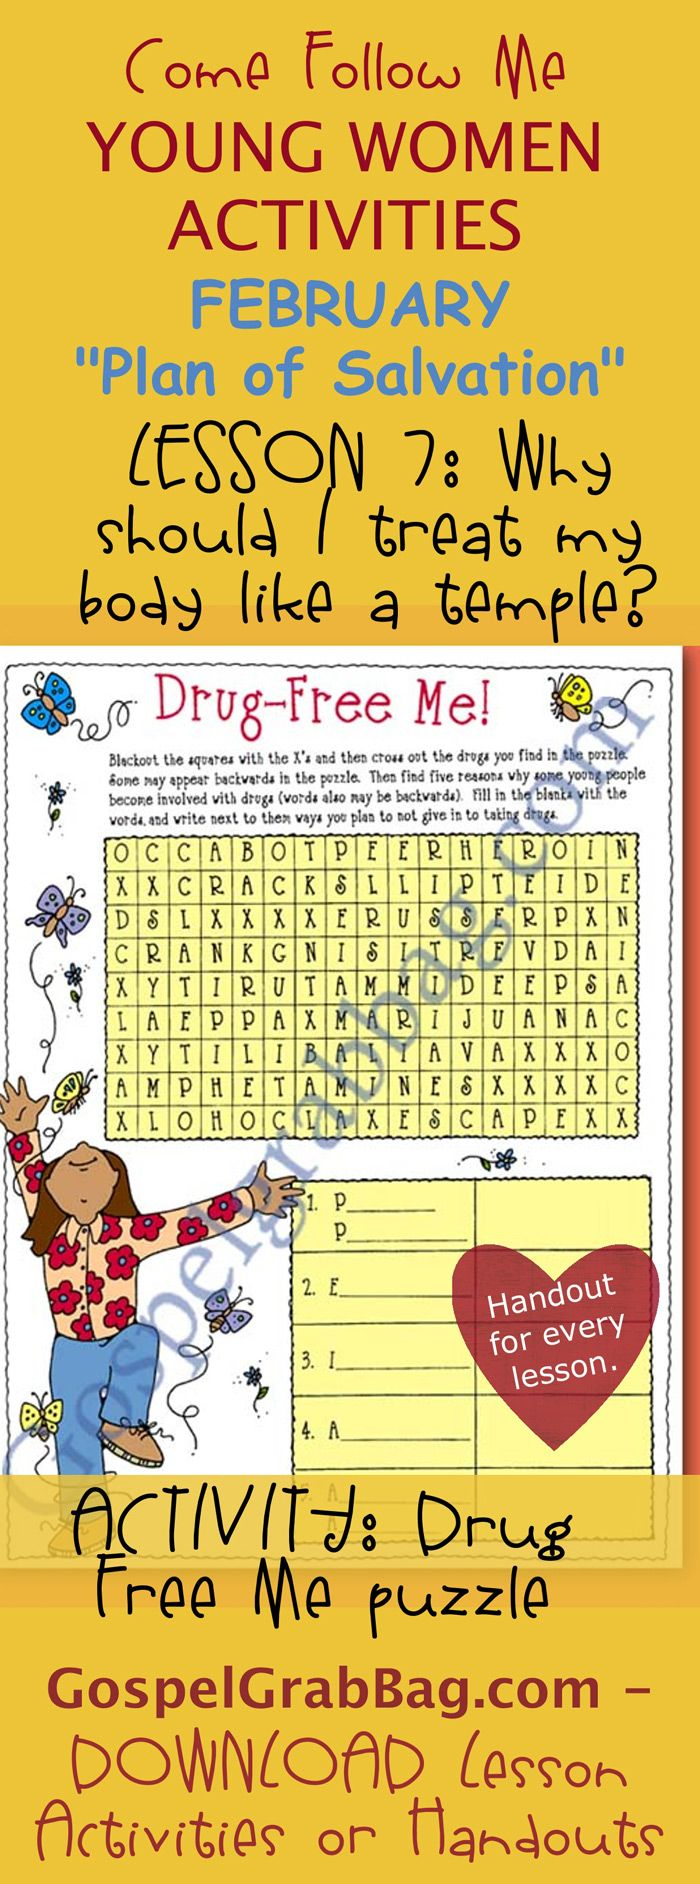 DRUGS AND SUBSTANCE ABUSE – BODY IS A TEMPLE - PLAN OF SALVATION: Come Follow Me – LDS Young Women Activities, February Theme: The Plan of Salvation, Lesson Topic #7: Why should I treat my body like a temple? handout for every lesson, ACTIVITY: Drug free Me! puzzle, Gospel grab bag – handouts to download from gospelgrabbag.com